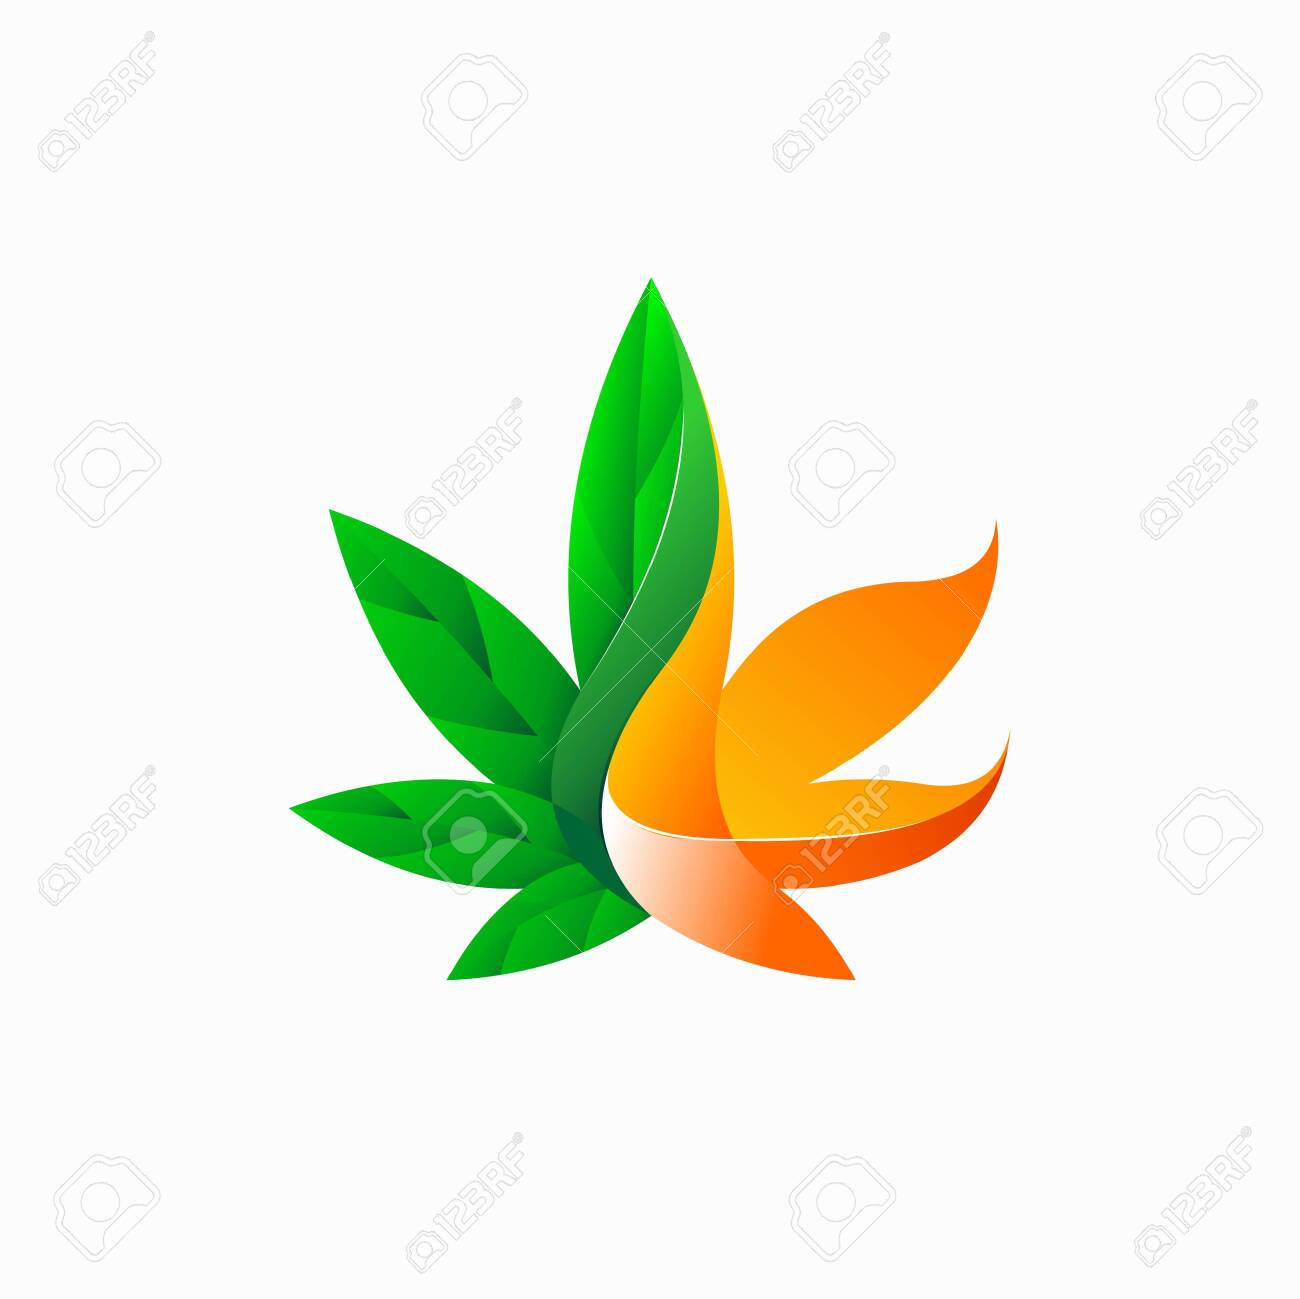 Cannabis logo with fire concept - 143708392